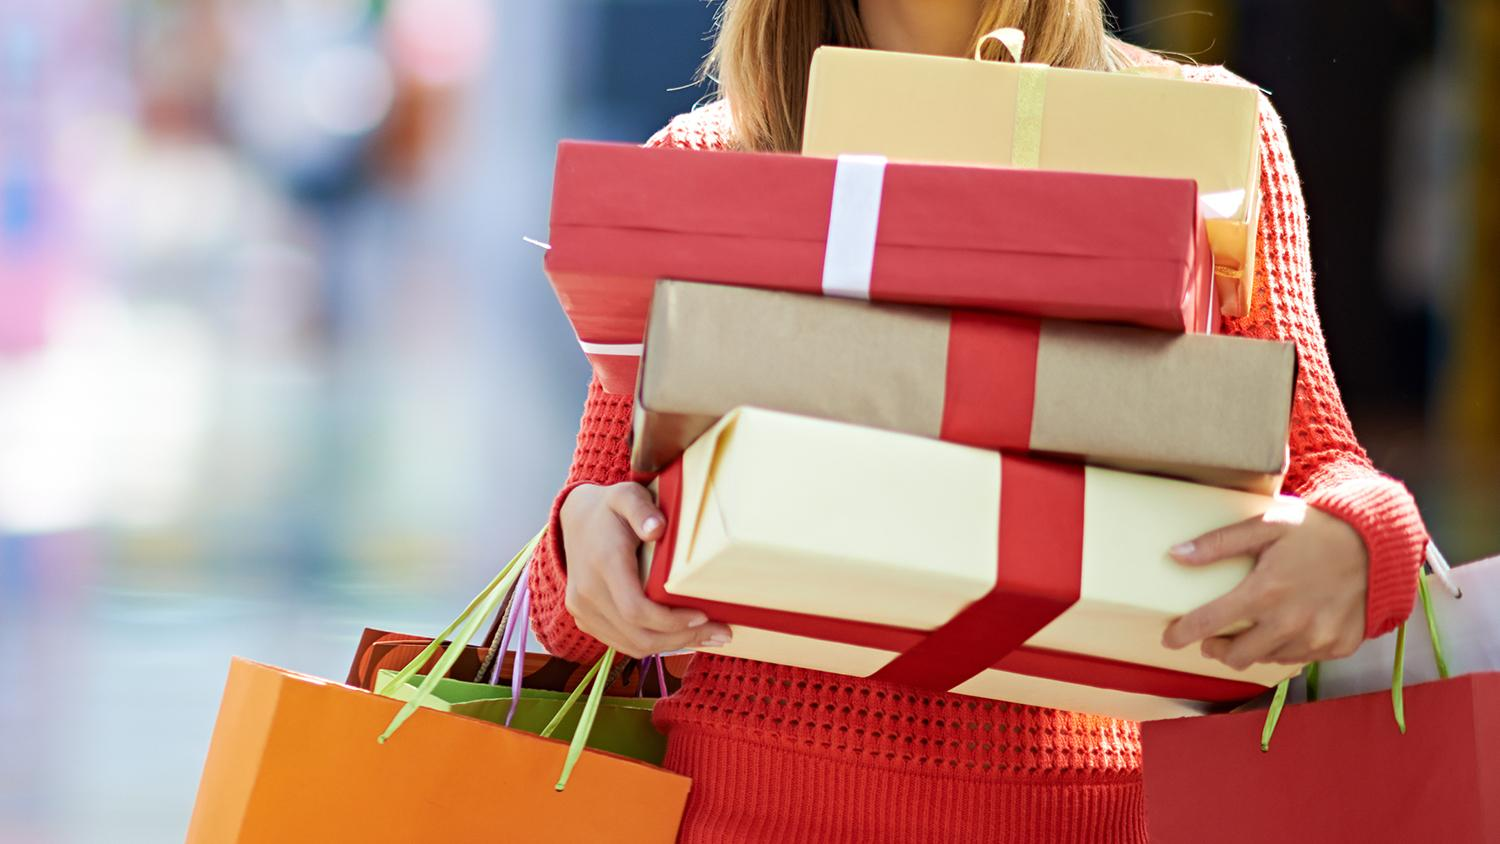 Holiday shopping boxes and bags